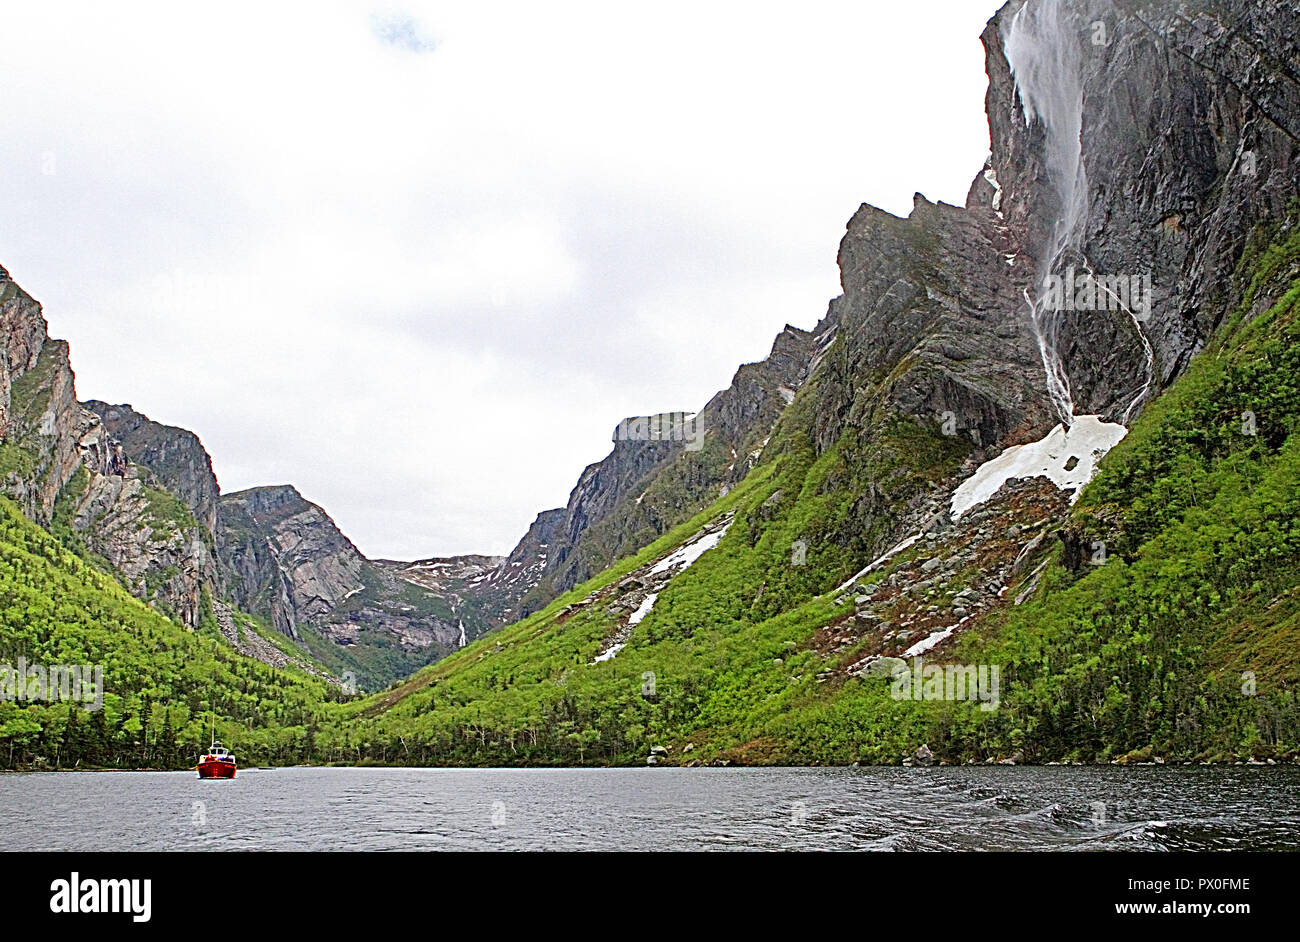 Water falls in Western Brook Pond, Gros Morne National Park, Newfoundland, Canada, Tabletop Mountains, inland fjiord - Stock Image